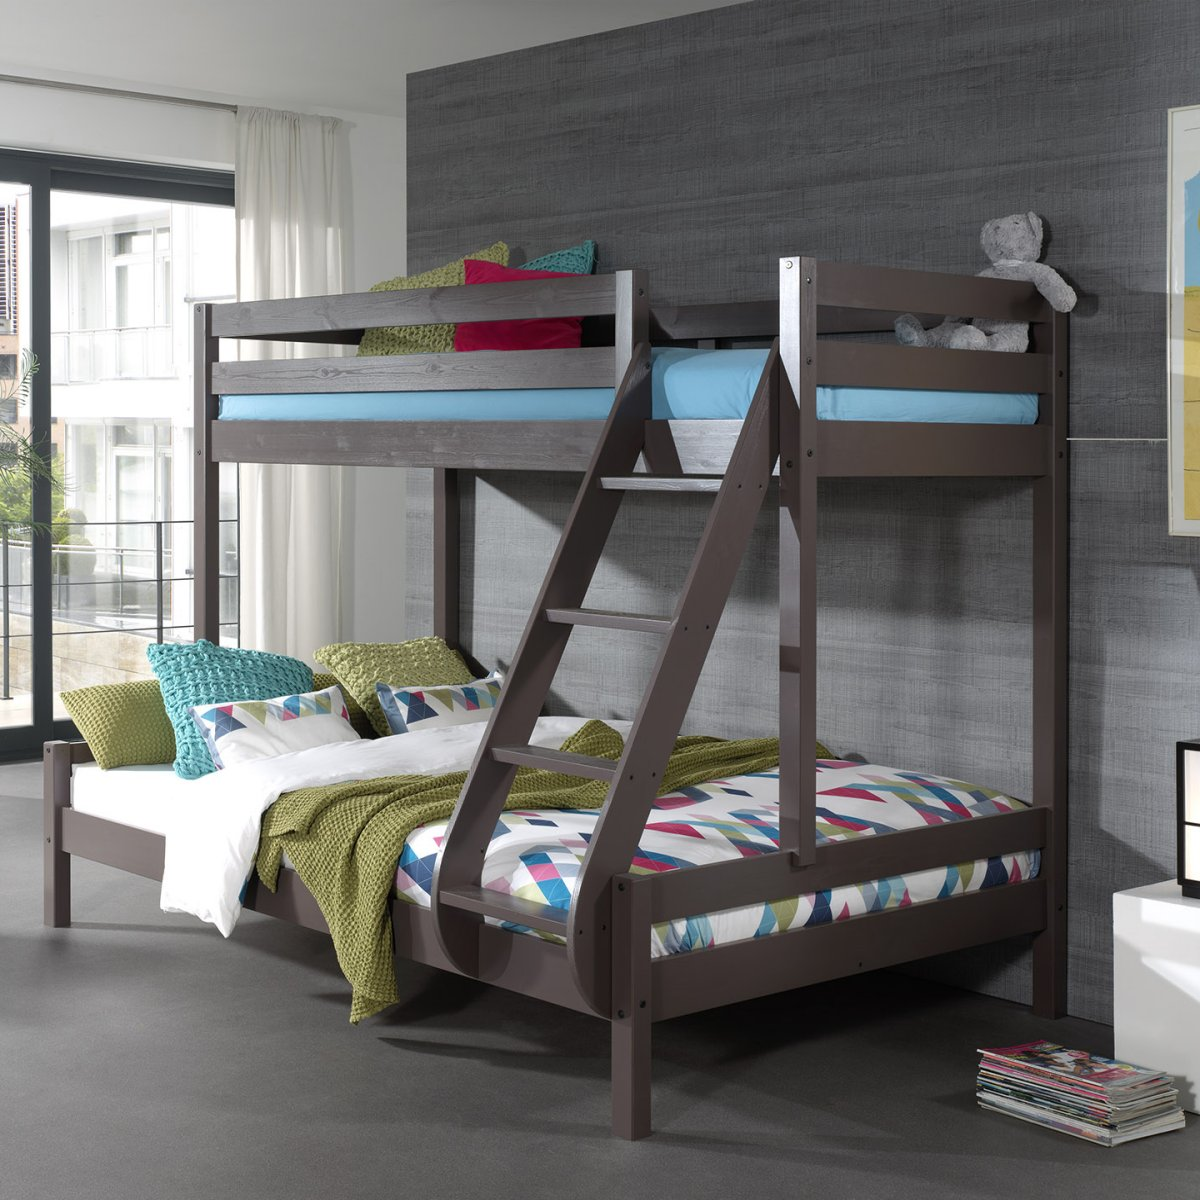 Picture of: Family Double Bunk Bed Solid Wood Taupe Grey For Kids Bedrooms